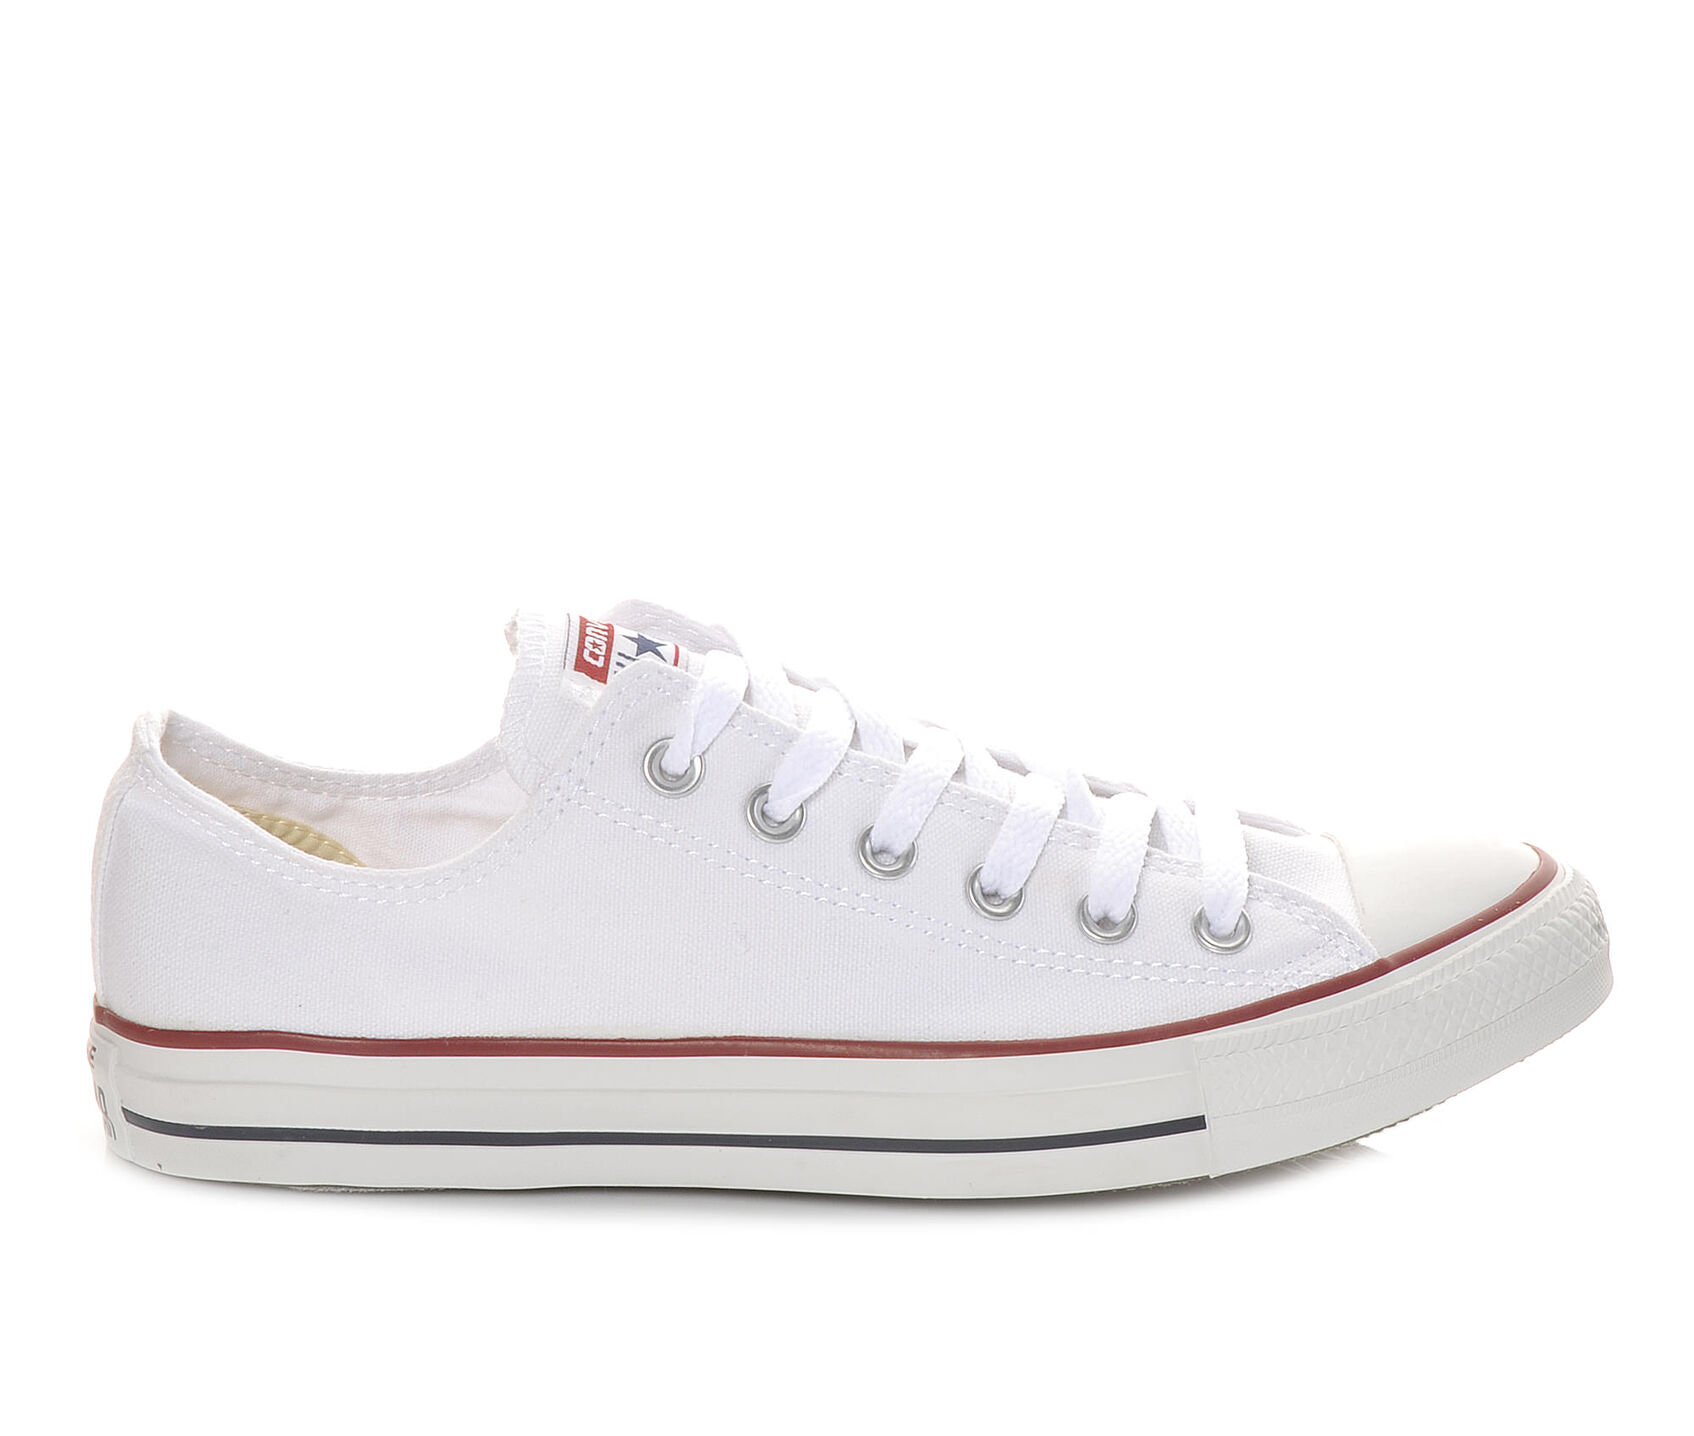 genuine shoes online here no sale tax Adults' Converse Chuck Taylor All Star Canvas Ox Core Sneakers